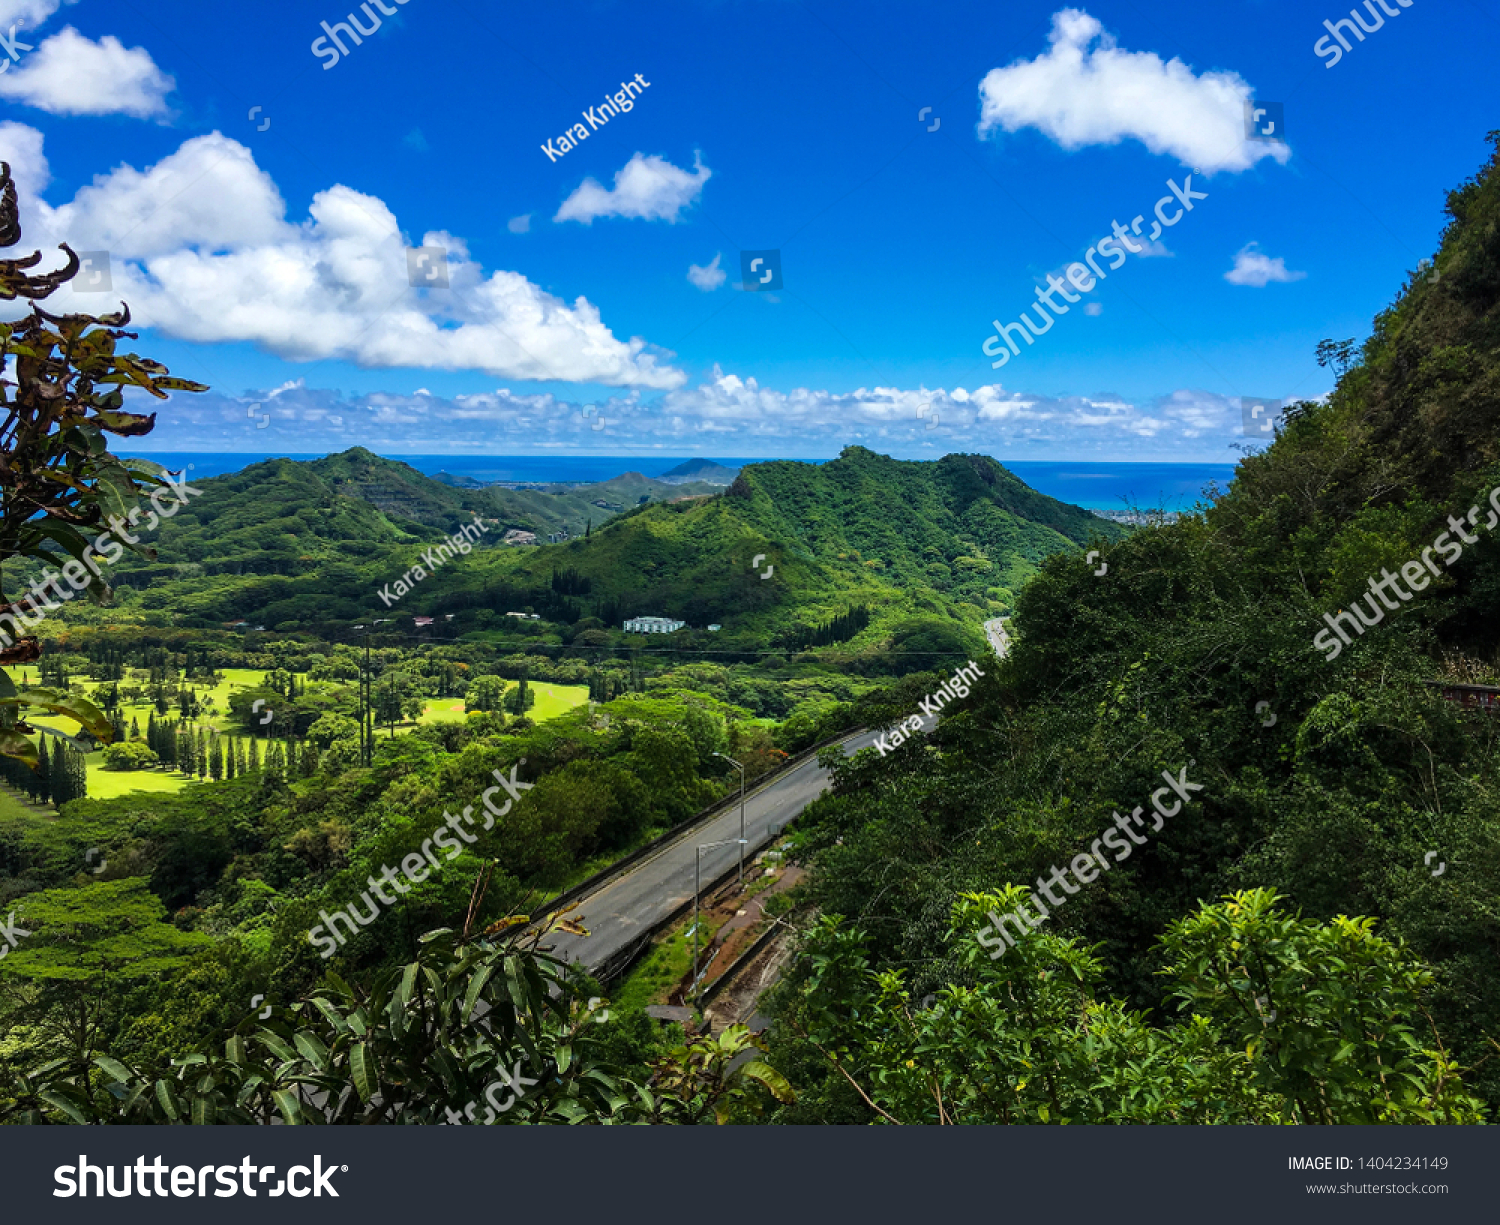 Kailua, Hawaii / USA - May 12 2019: View seen from hiking on the Old Pali road of the Pali Highway, which is currently under construction, closure, the east side of Oahu, views of Kailua and Kaneohe.